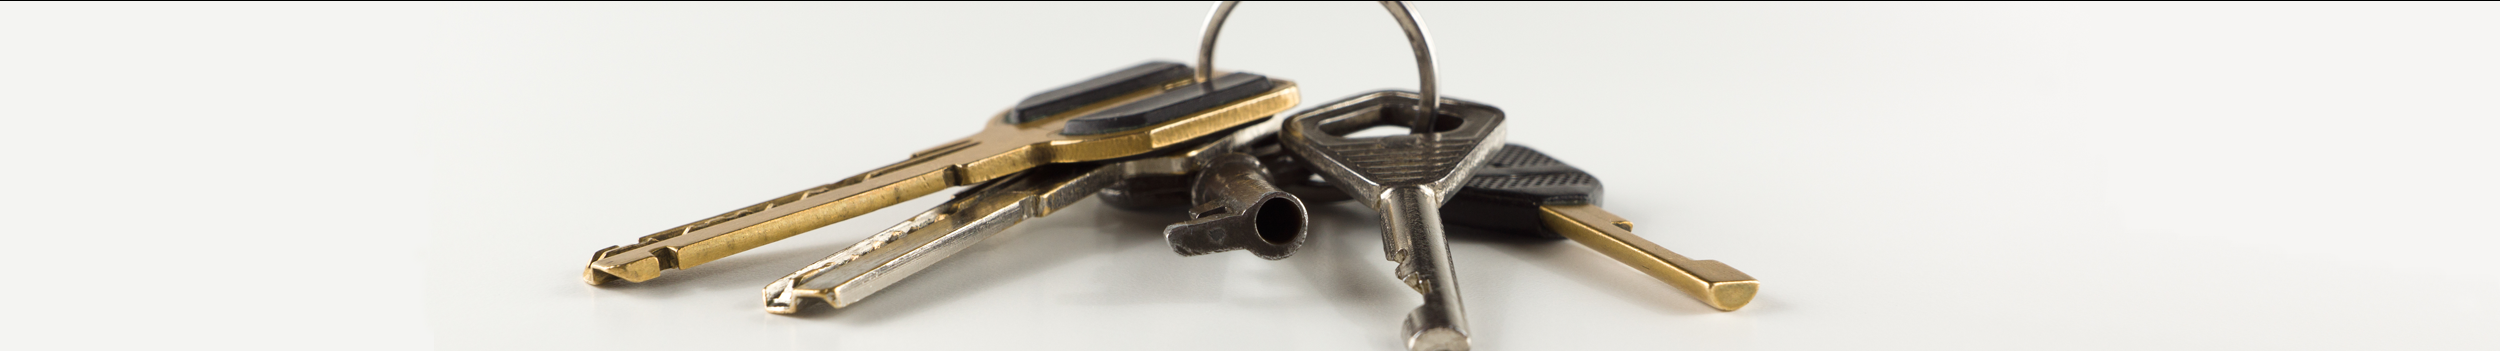 LockSolid Locksmiths Norwich | Testimonials